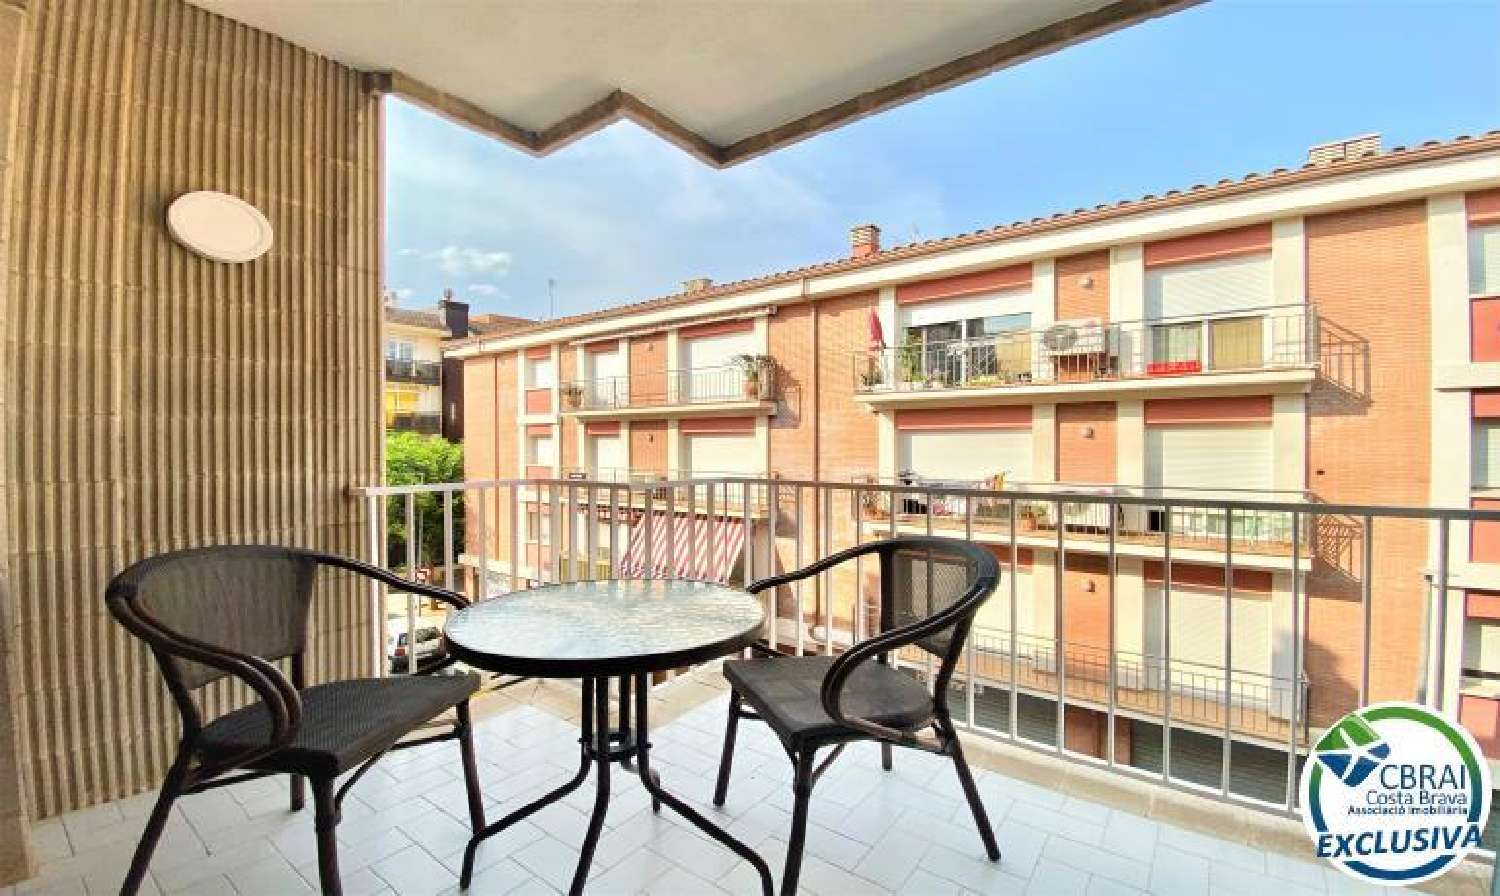 roses girona appartement foto 4644834